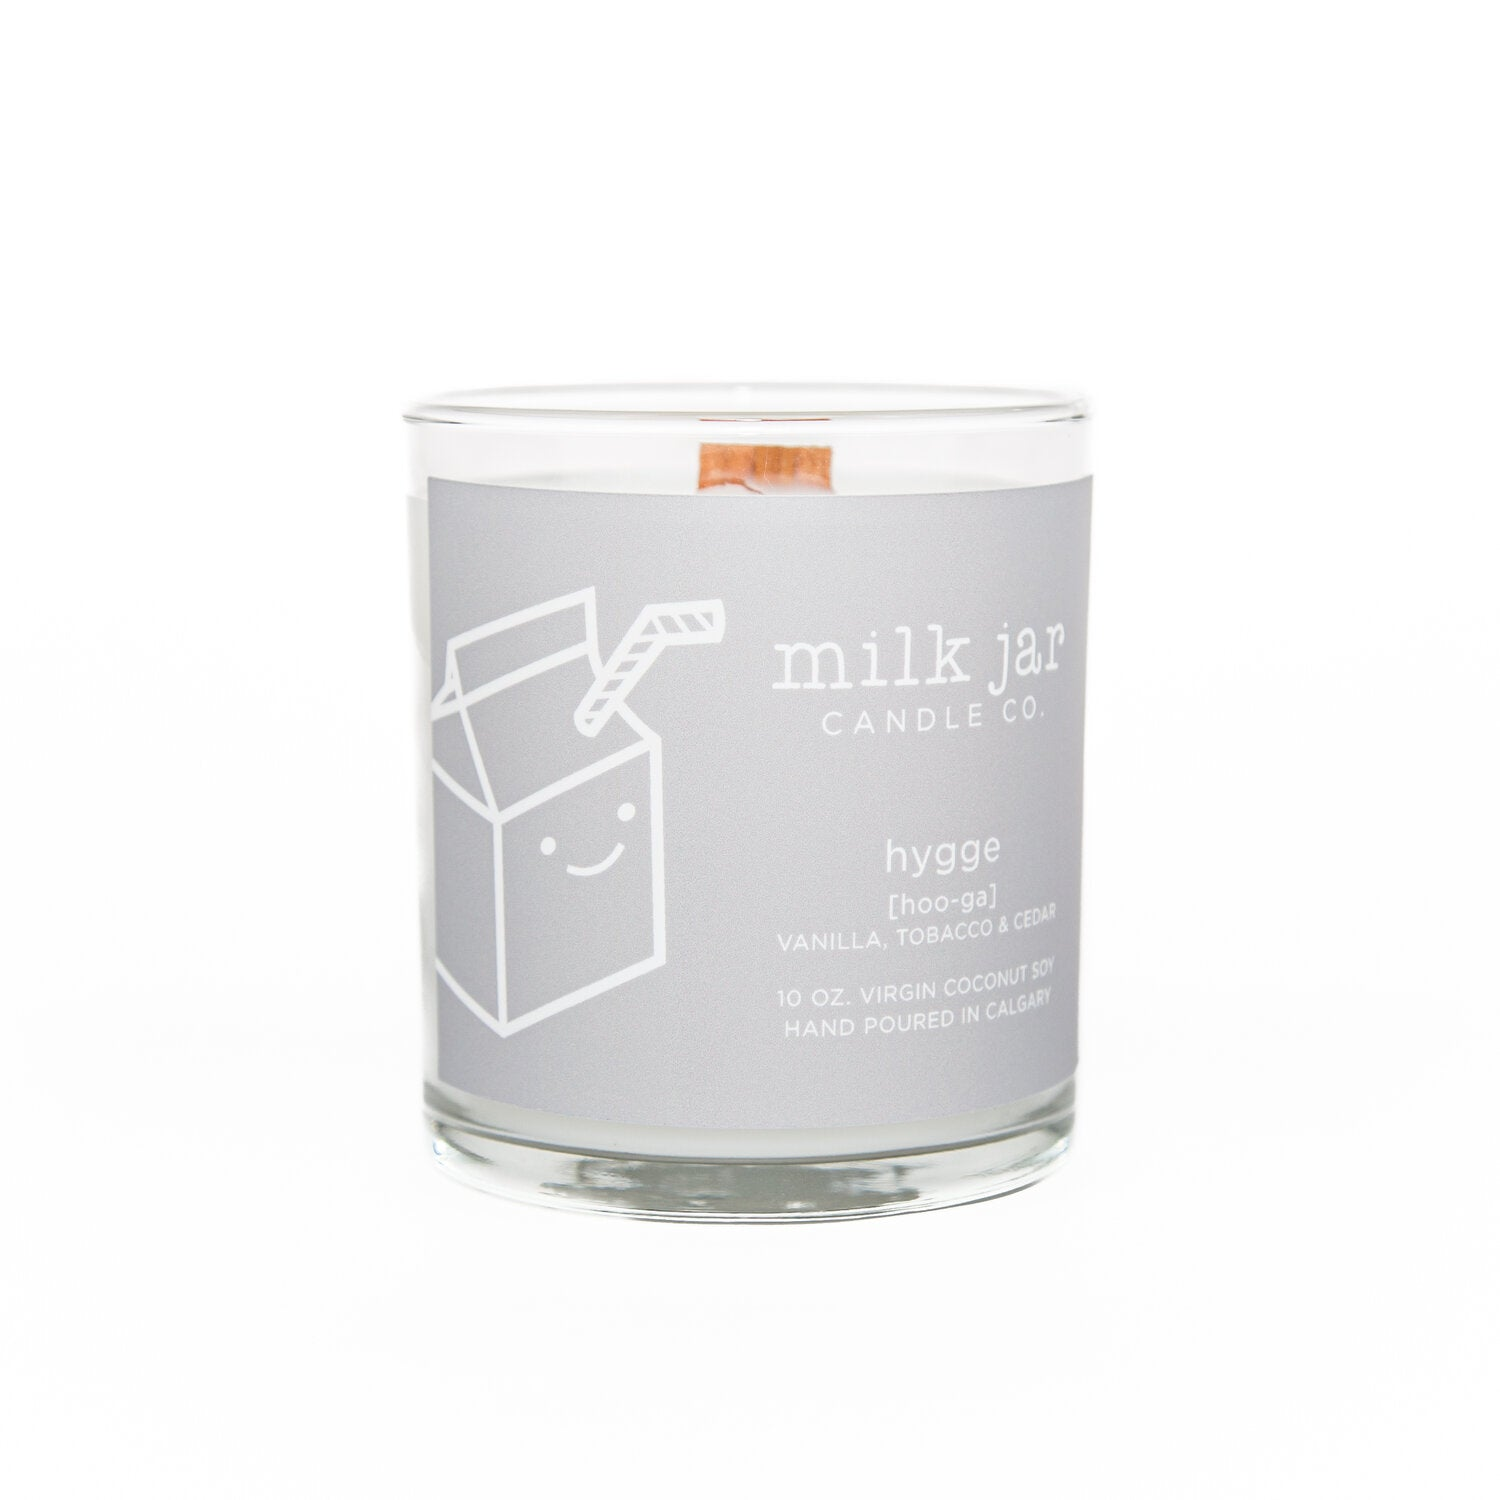 Milk jar candle co. - HYGGE